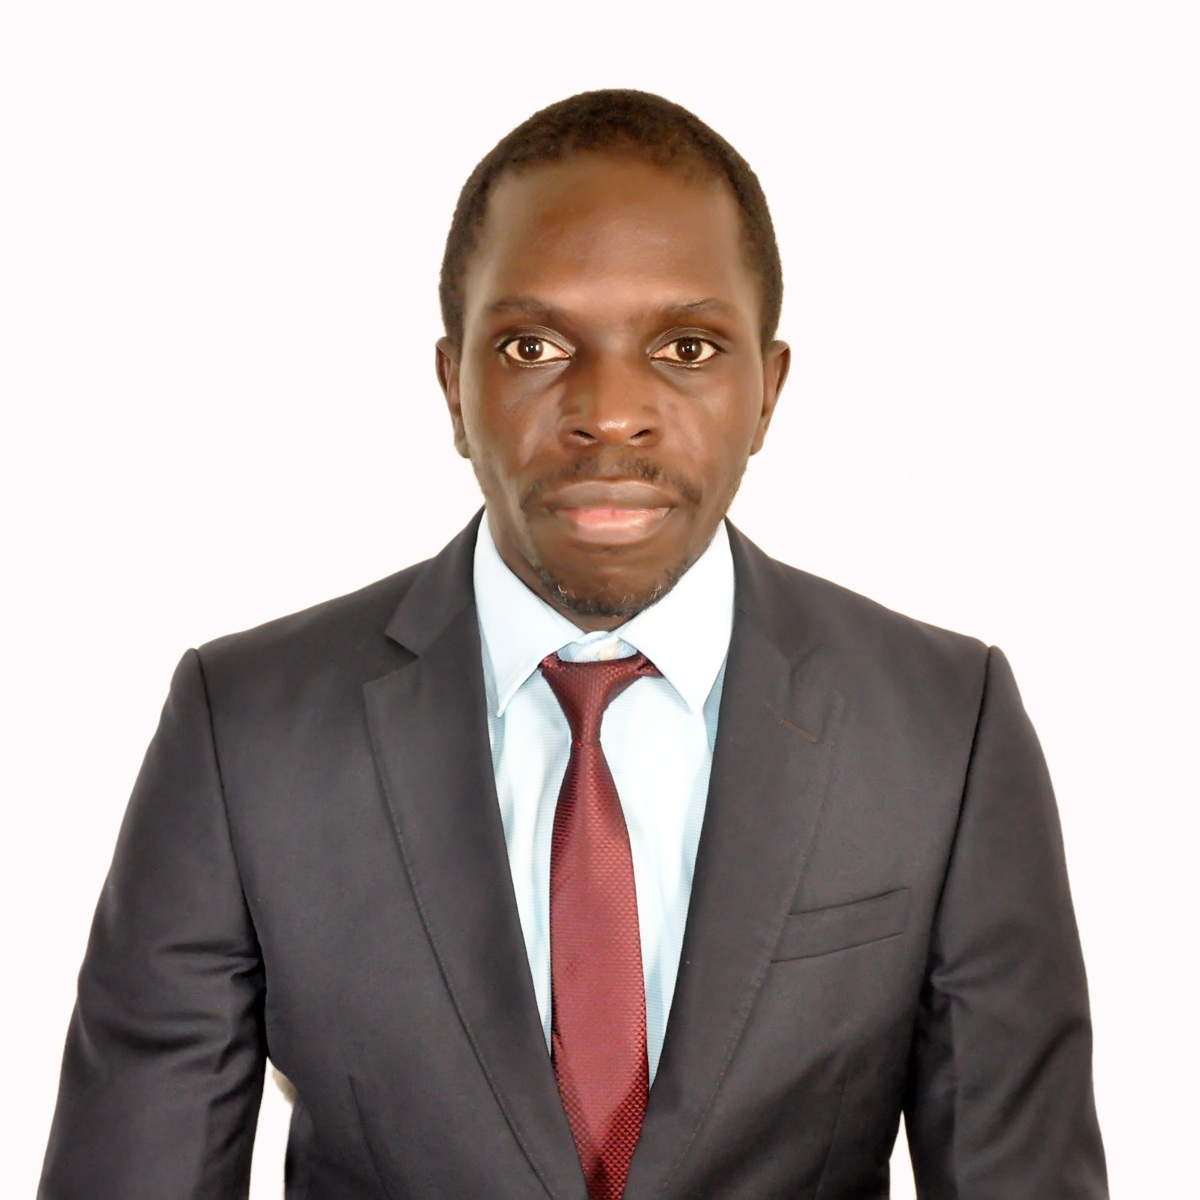 Charles Musoke, MBChB, MMed    Fellowship Site: Uganda Initiative for Integrated Management of Non-Communicable Diseases  US Institution: Yale University